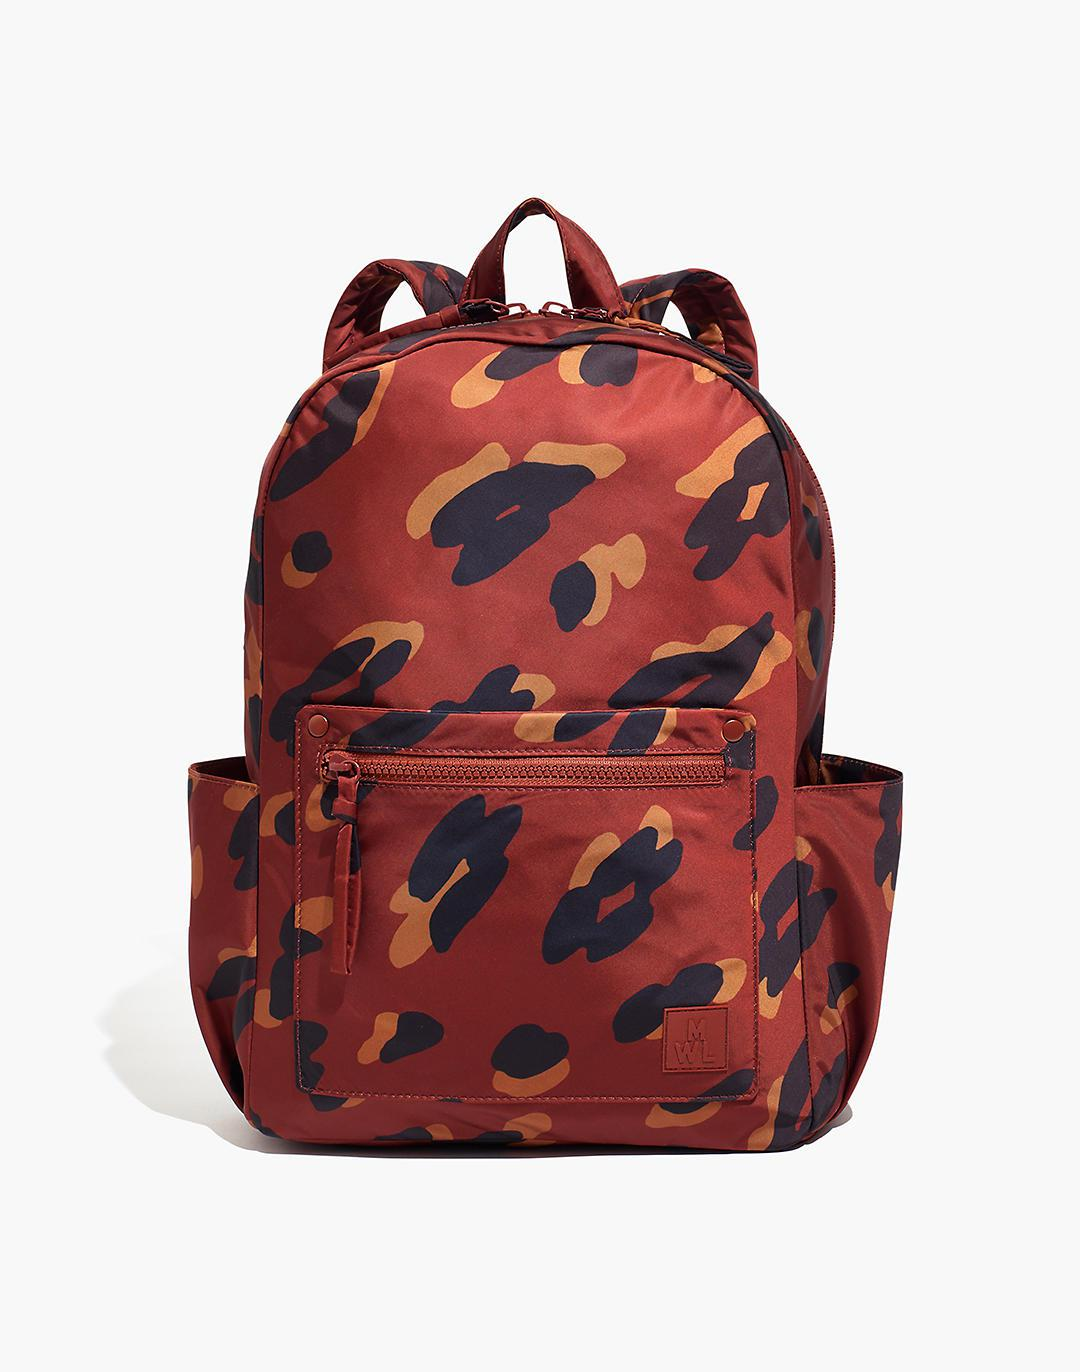 The (Re)sourced Backpack in Painted Leopard